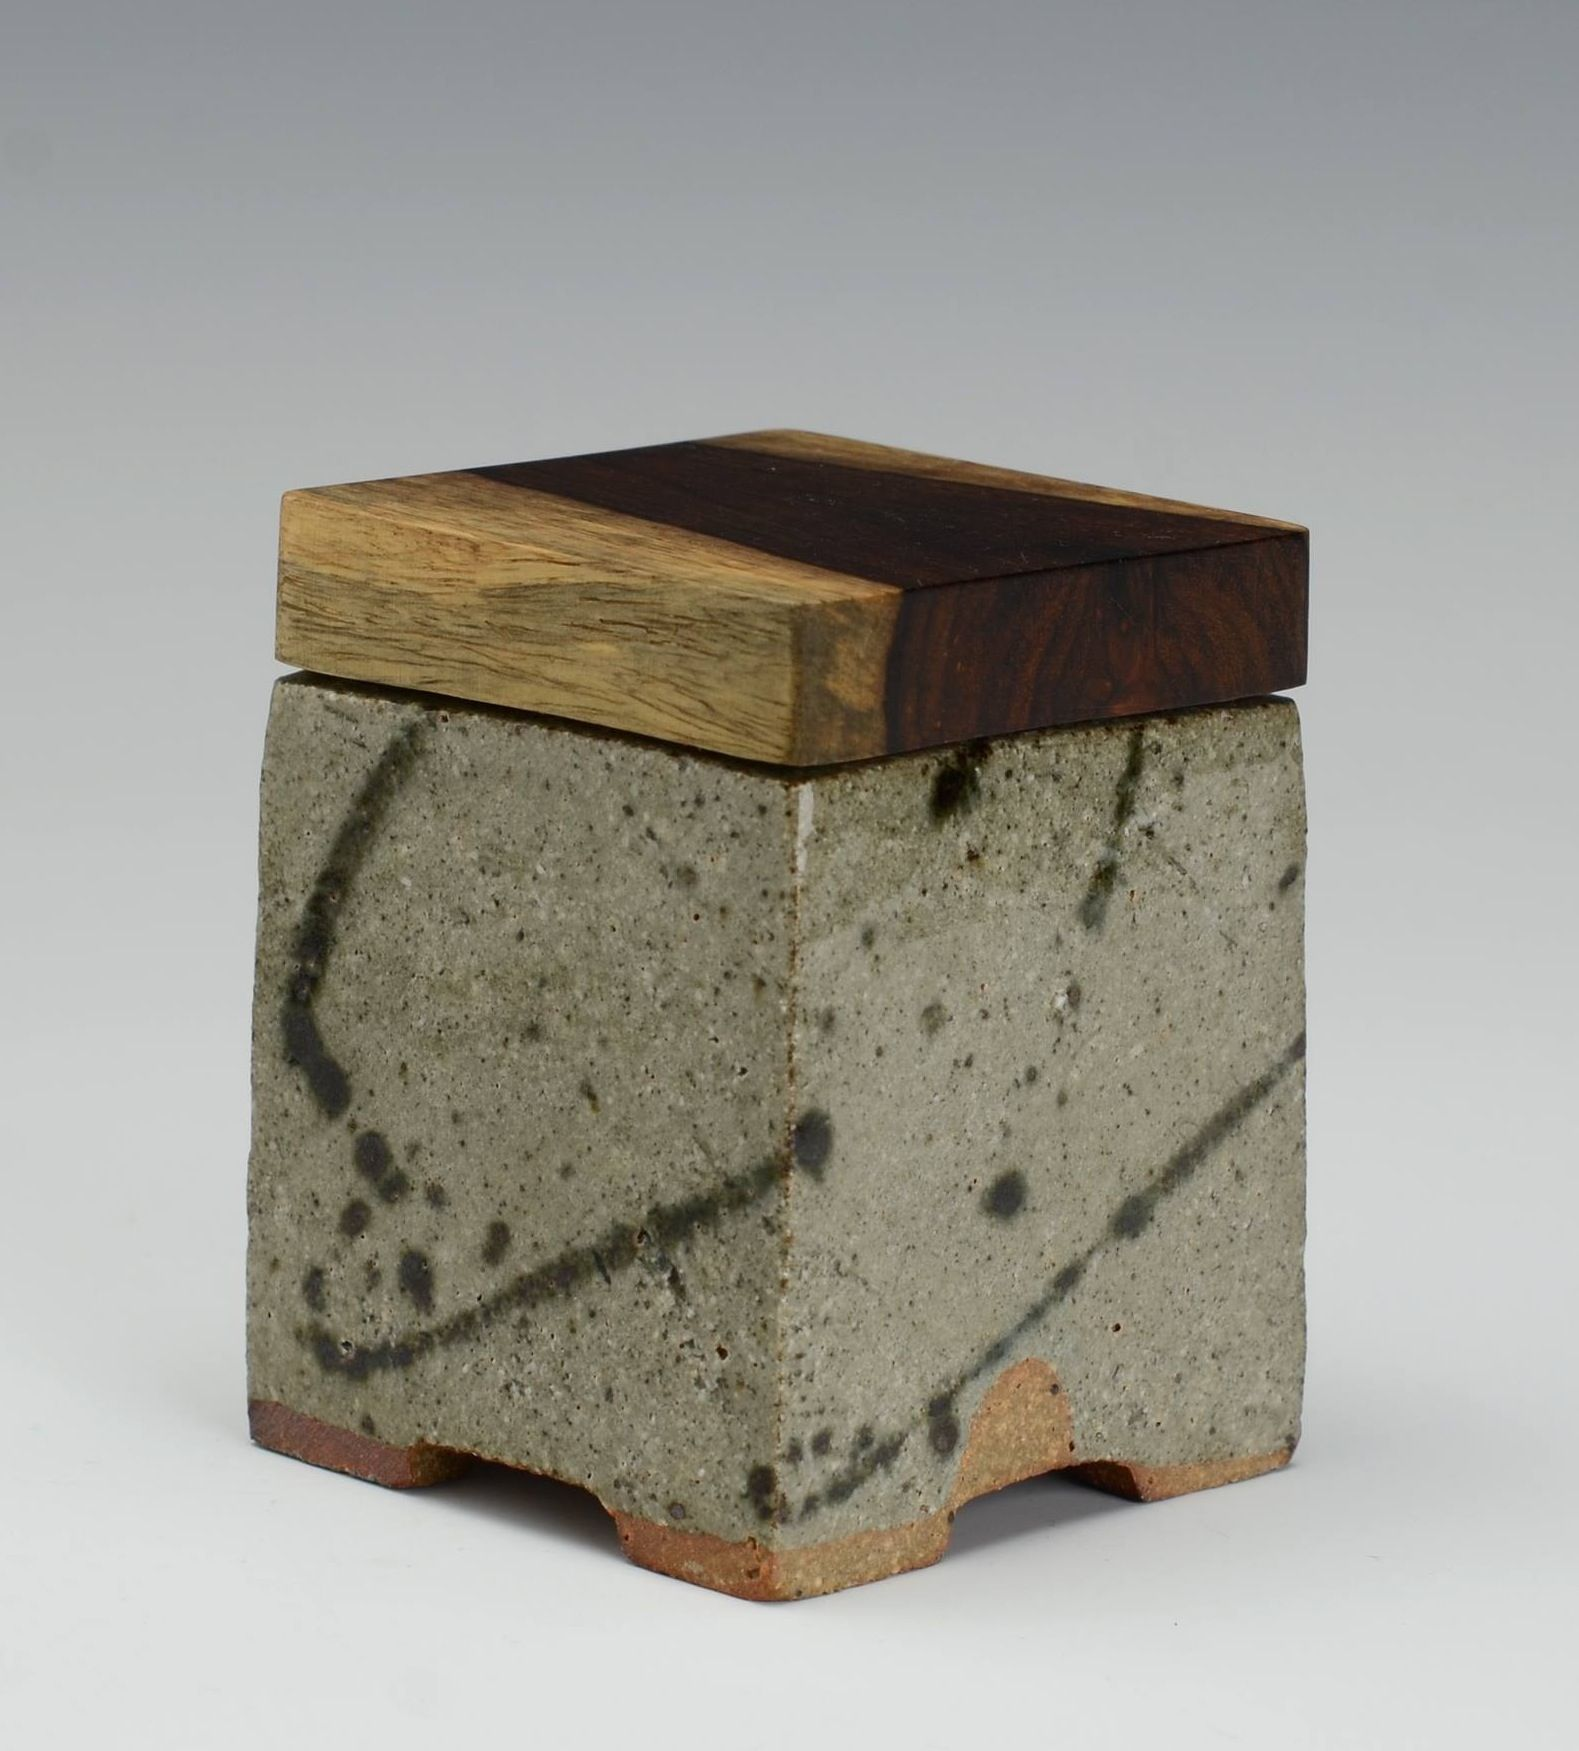 Box By David Wright With Wooden Lid Ceramic Boxes Clay Pottery Ceramic Jars